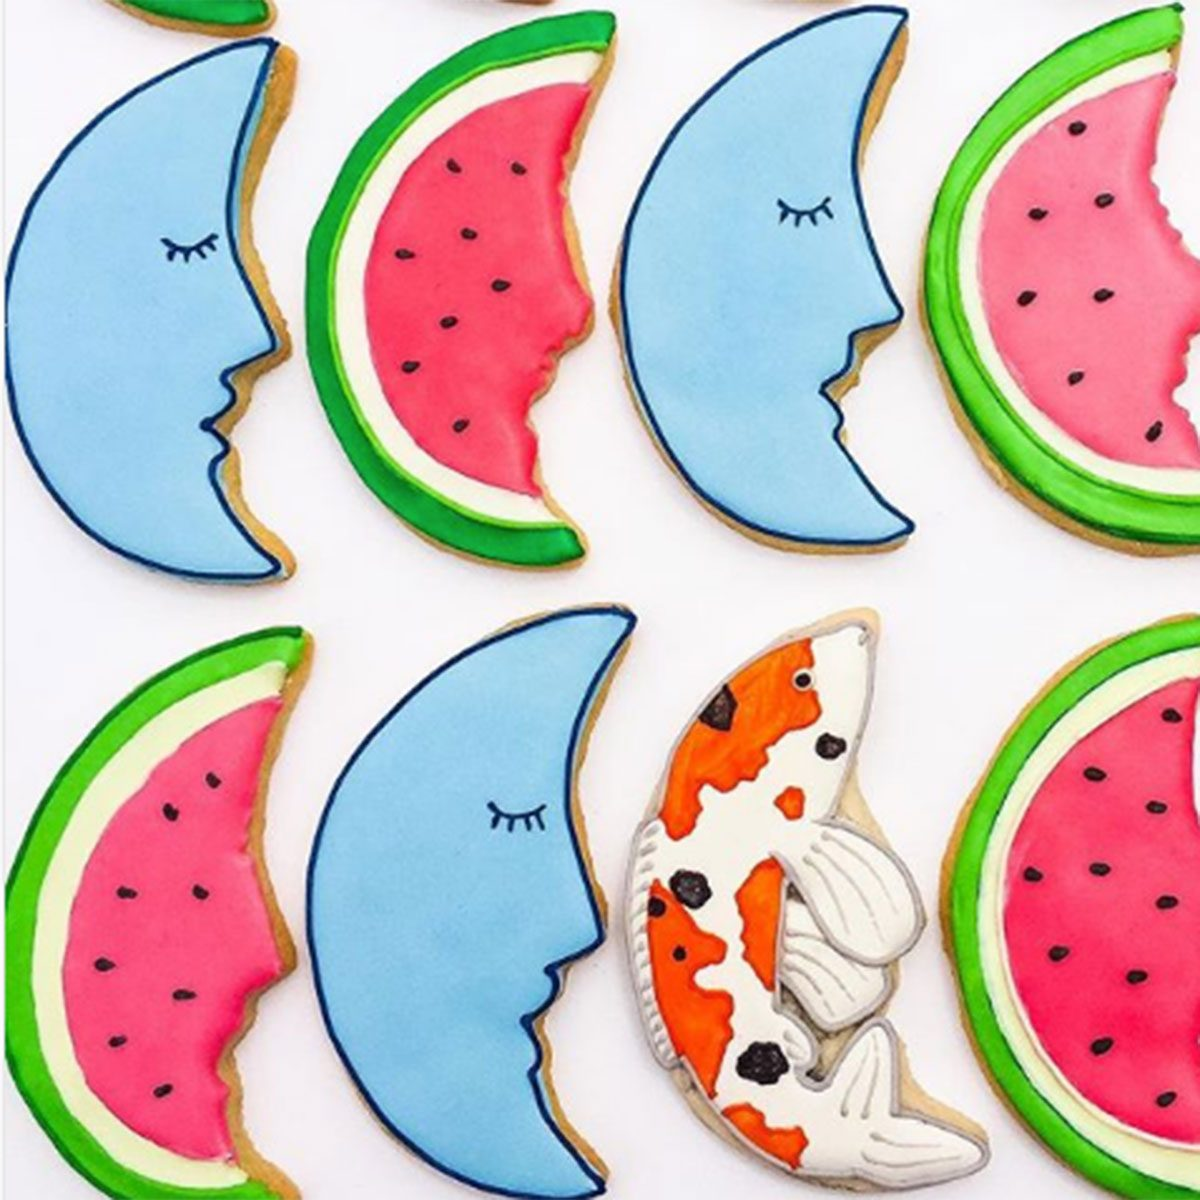 Watermelon and moon cookies